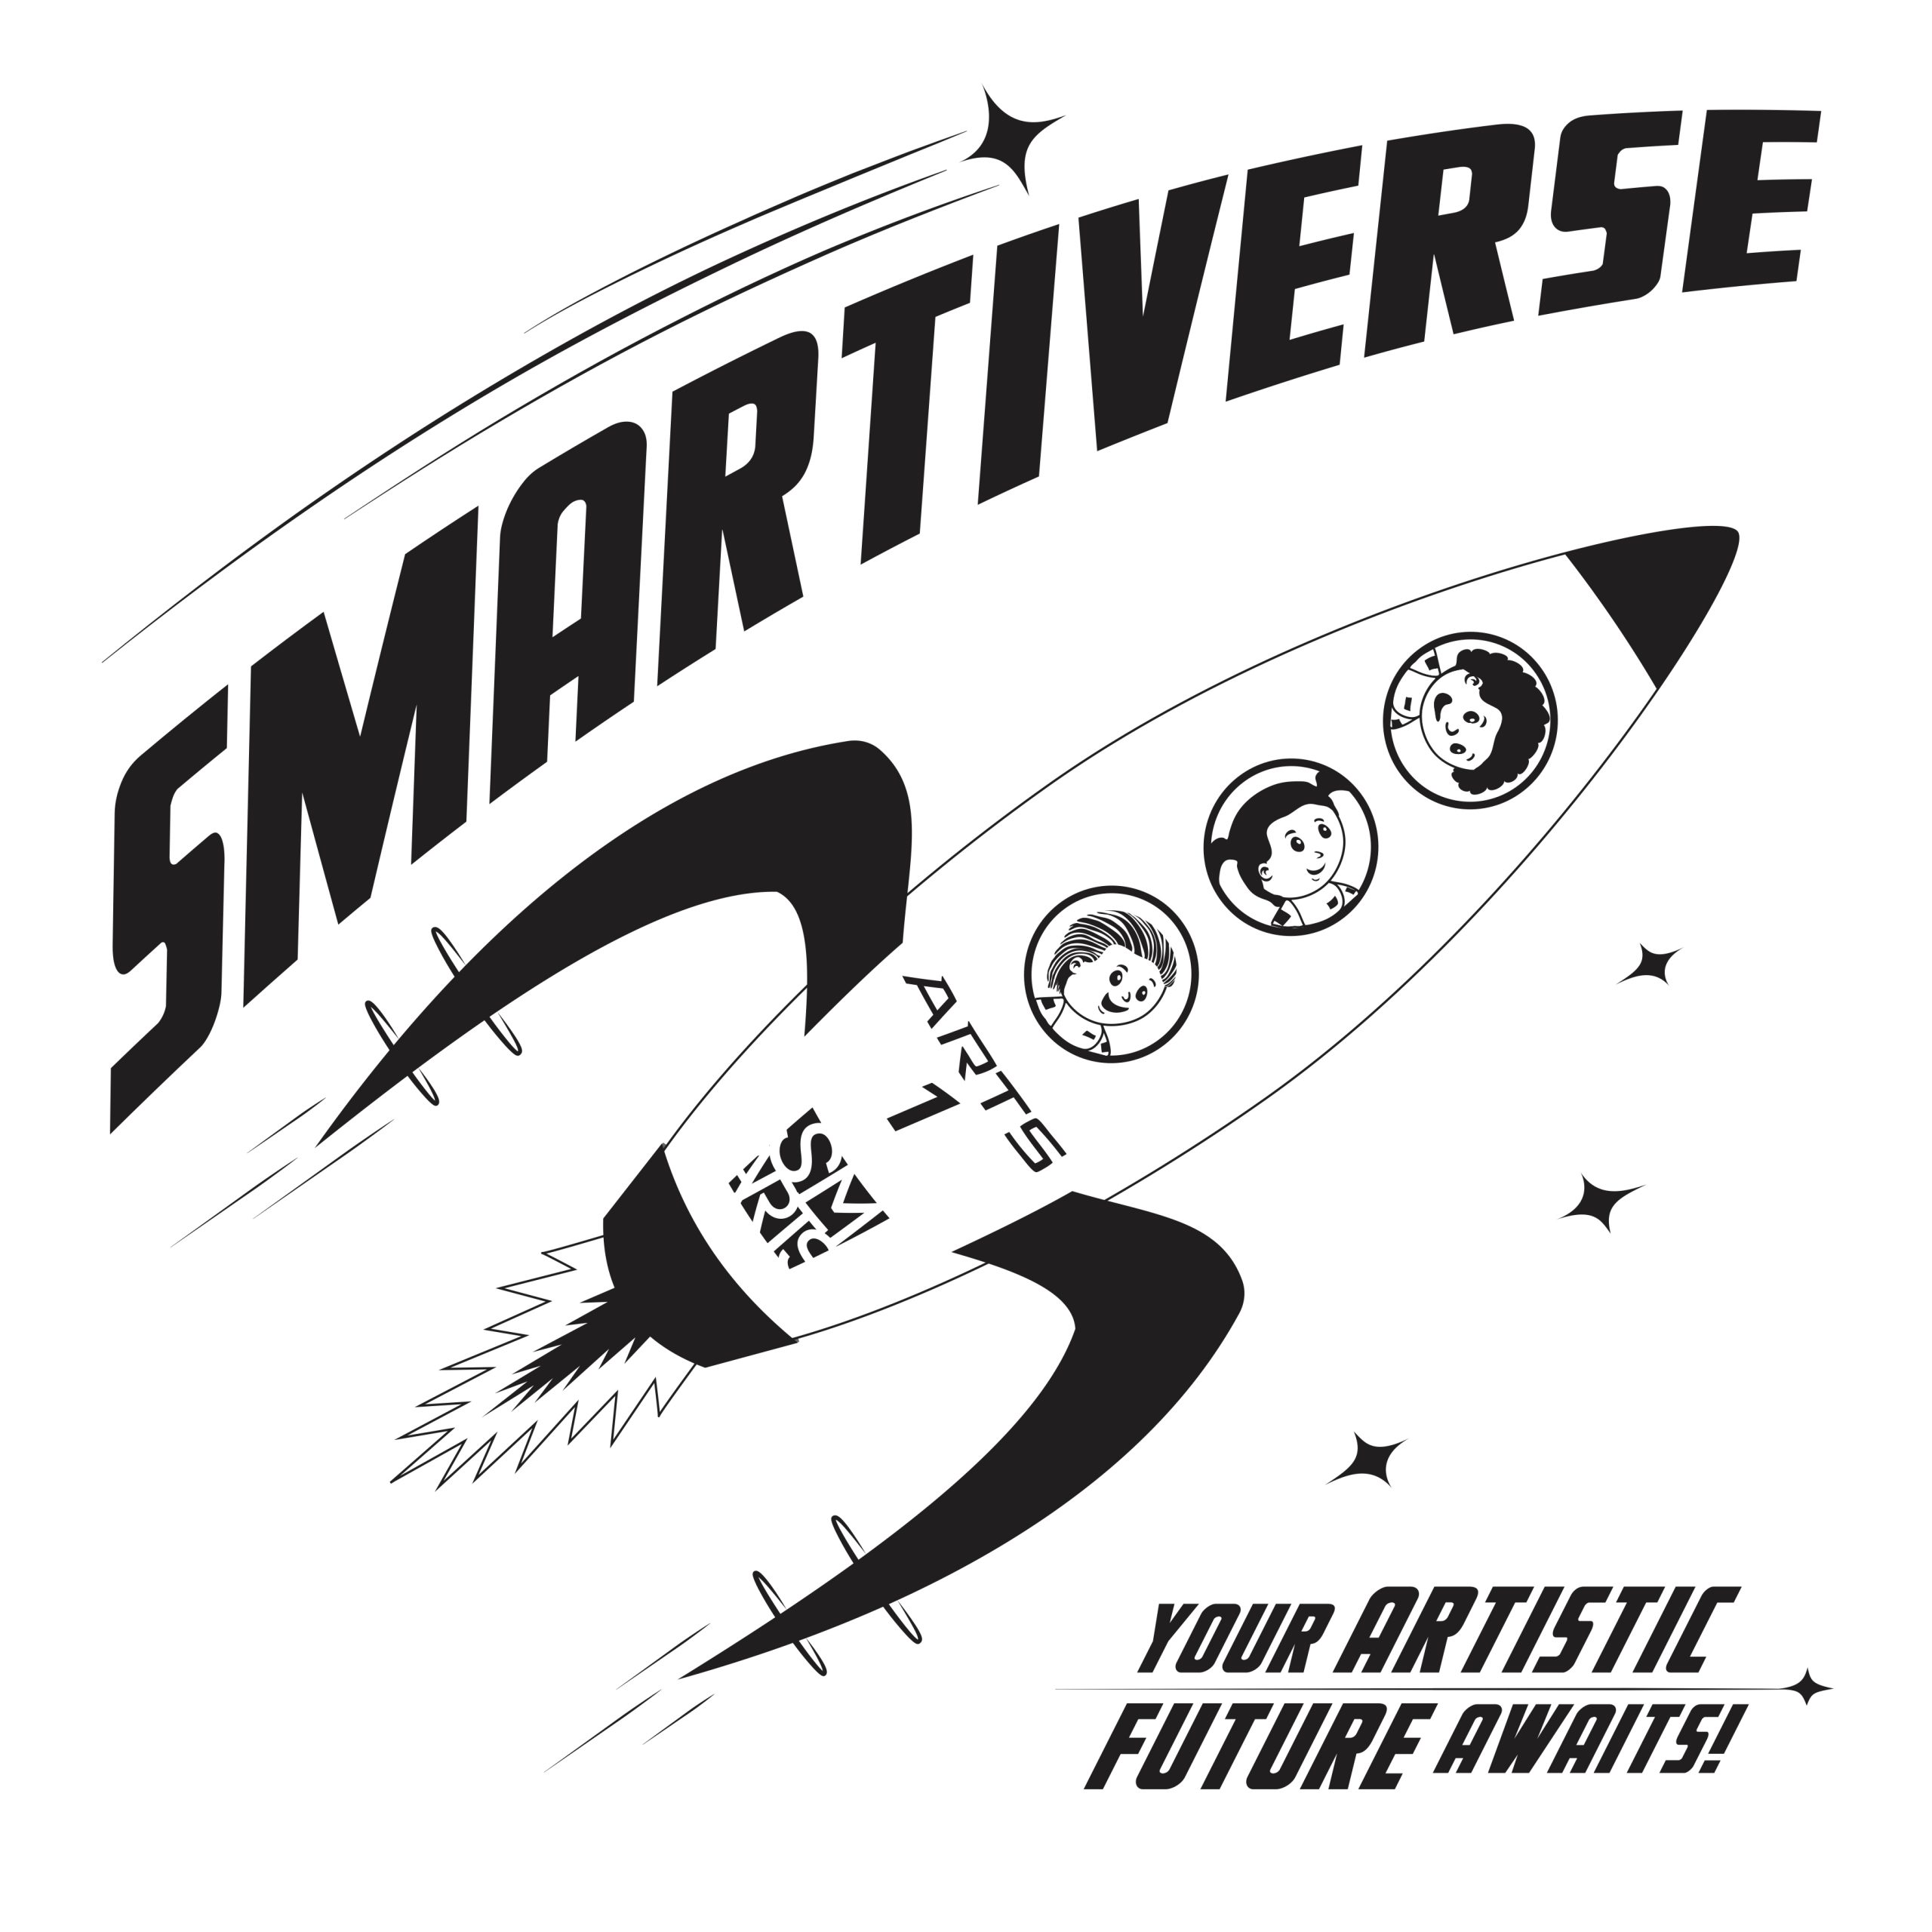 Smartiverse Shirt Design Front - Final Render 022420 01